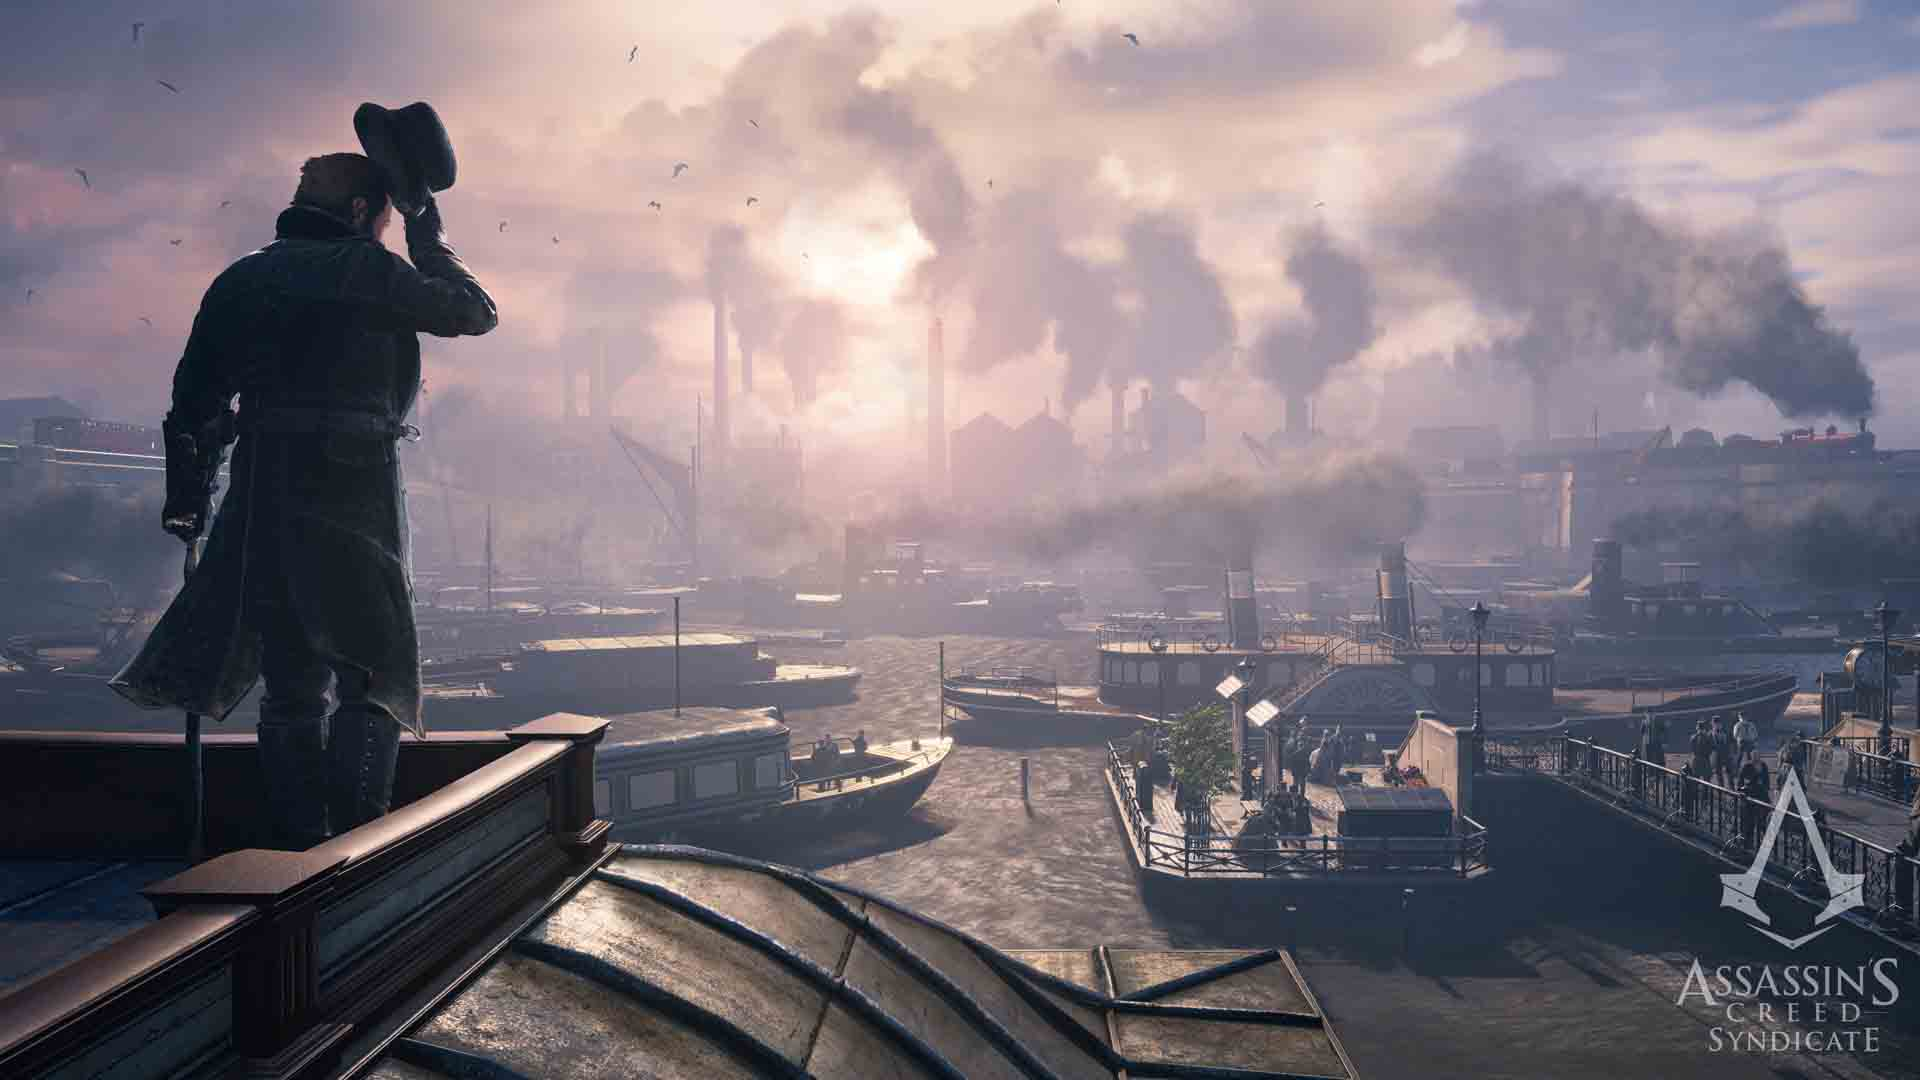 Assassins_Creed_Syndicate_Thames_River_1431438292.jpg